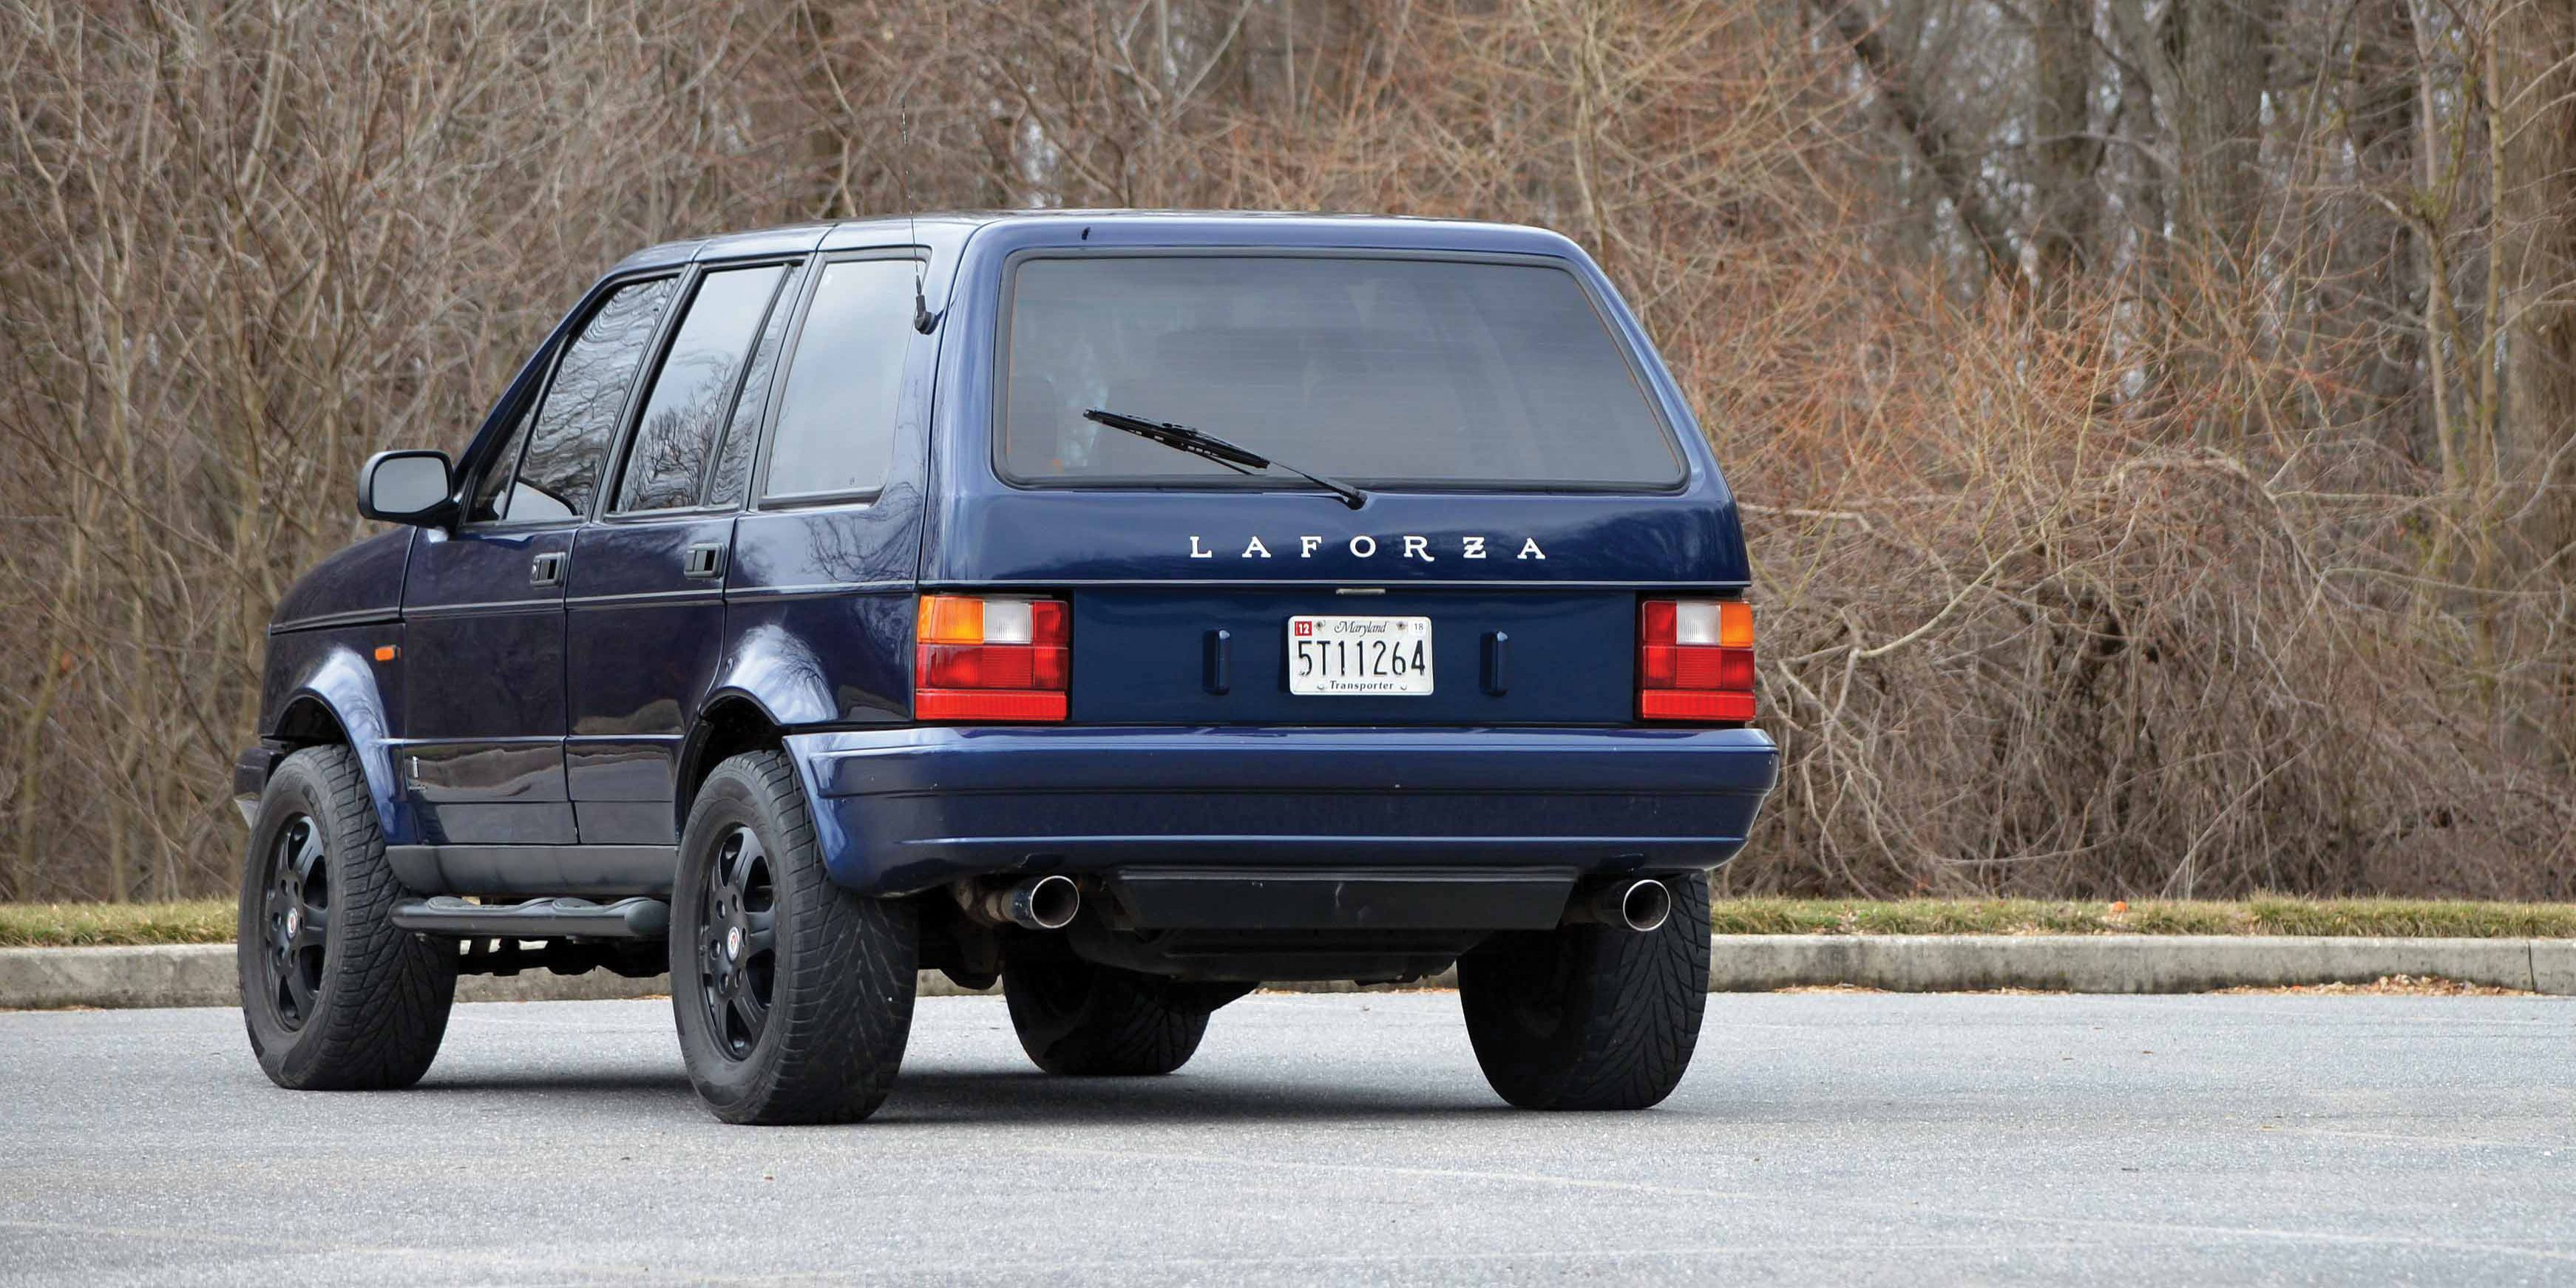 Buy This Laforza Be Too Cool For School